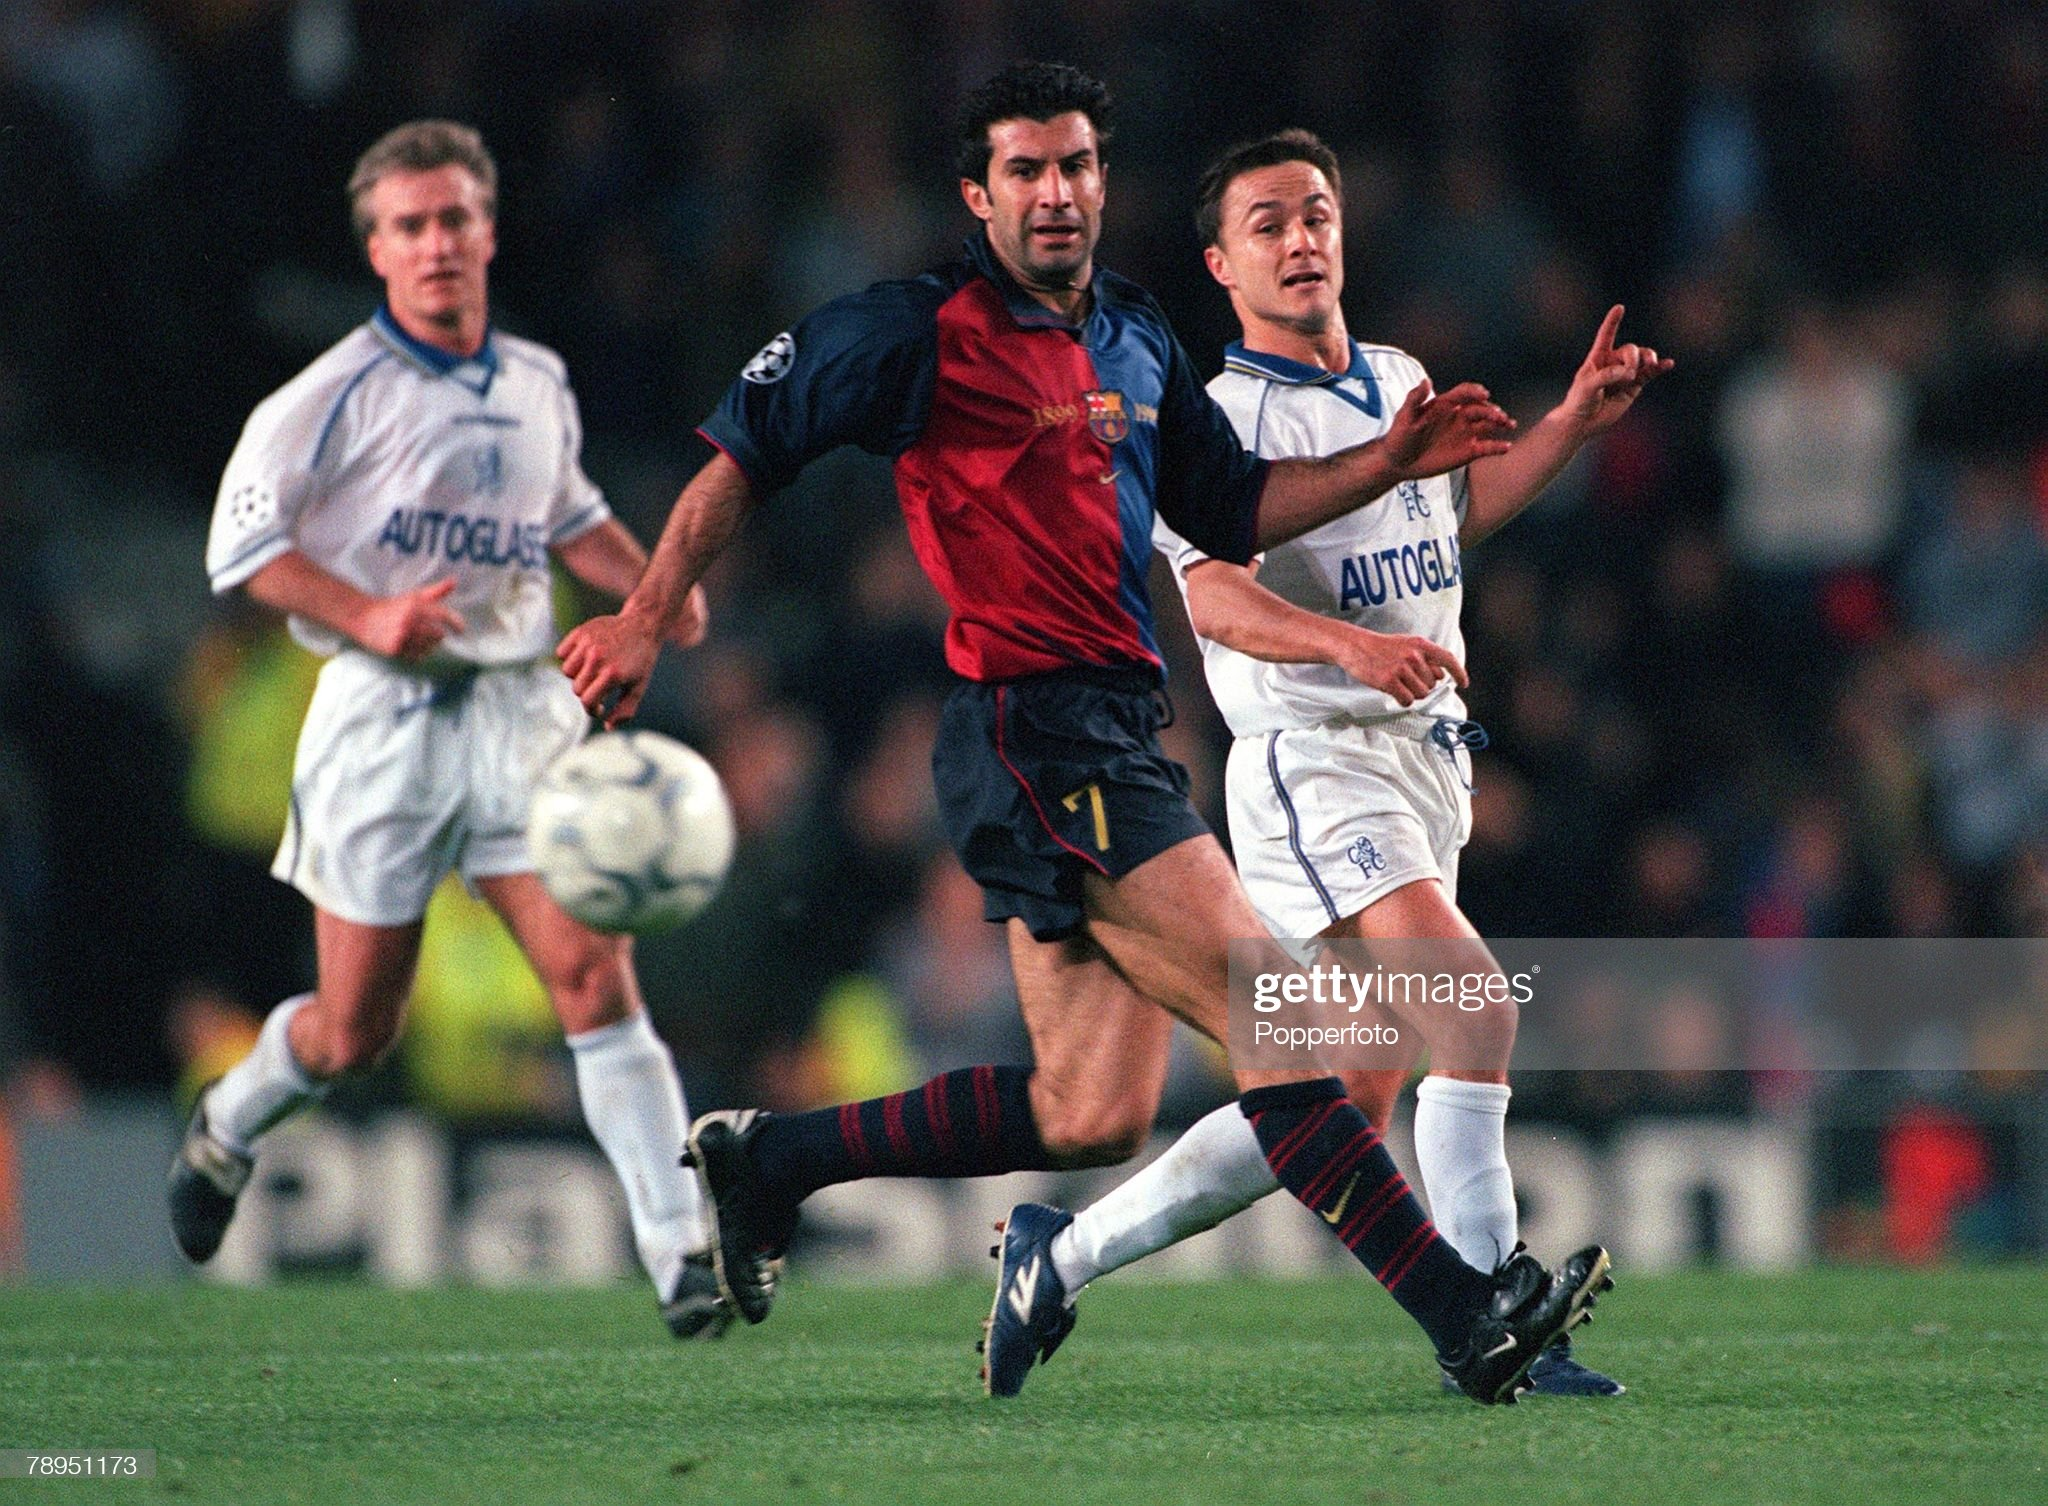 Football. UEFA Champions League. Quarter-final, 2nd leg. Nou Camp, Spain. 18th April 2000. Barcelona 5 v Chelsea 1. Barcelona's Luis Figo, is challenged by Chelsea's captain Dennis Wise. : News Photo